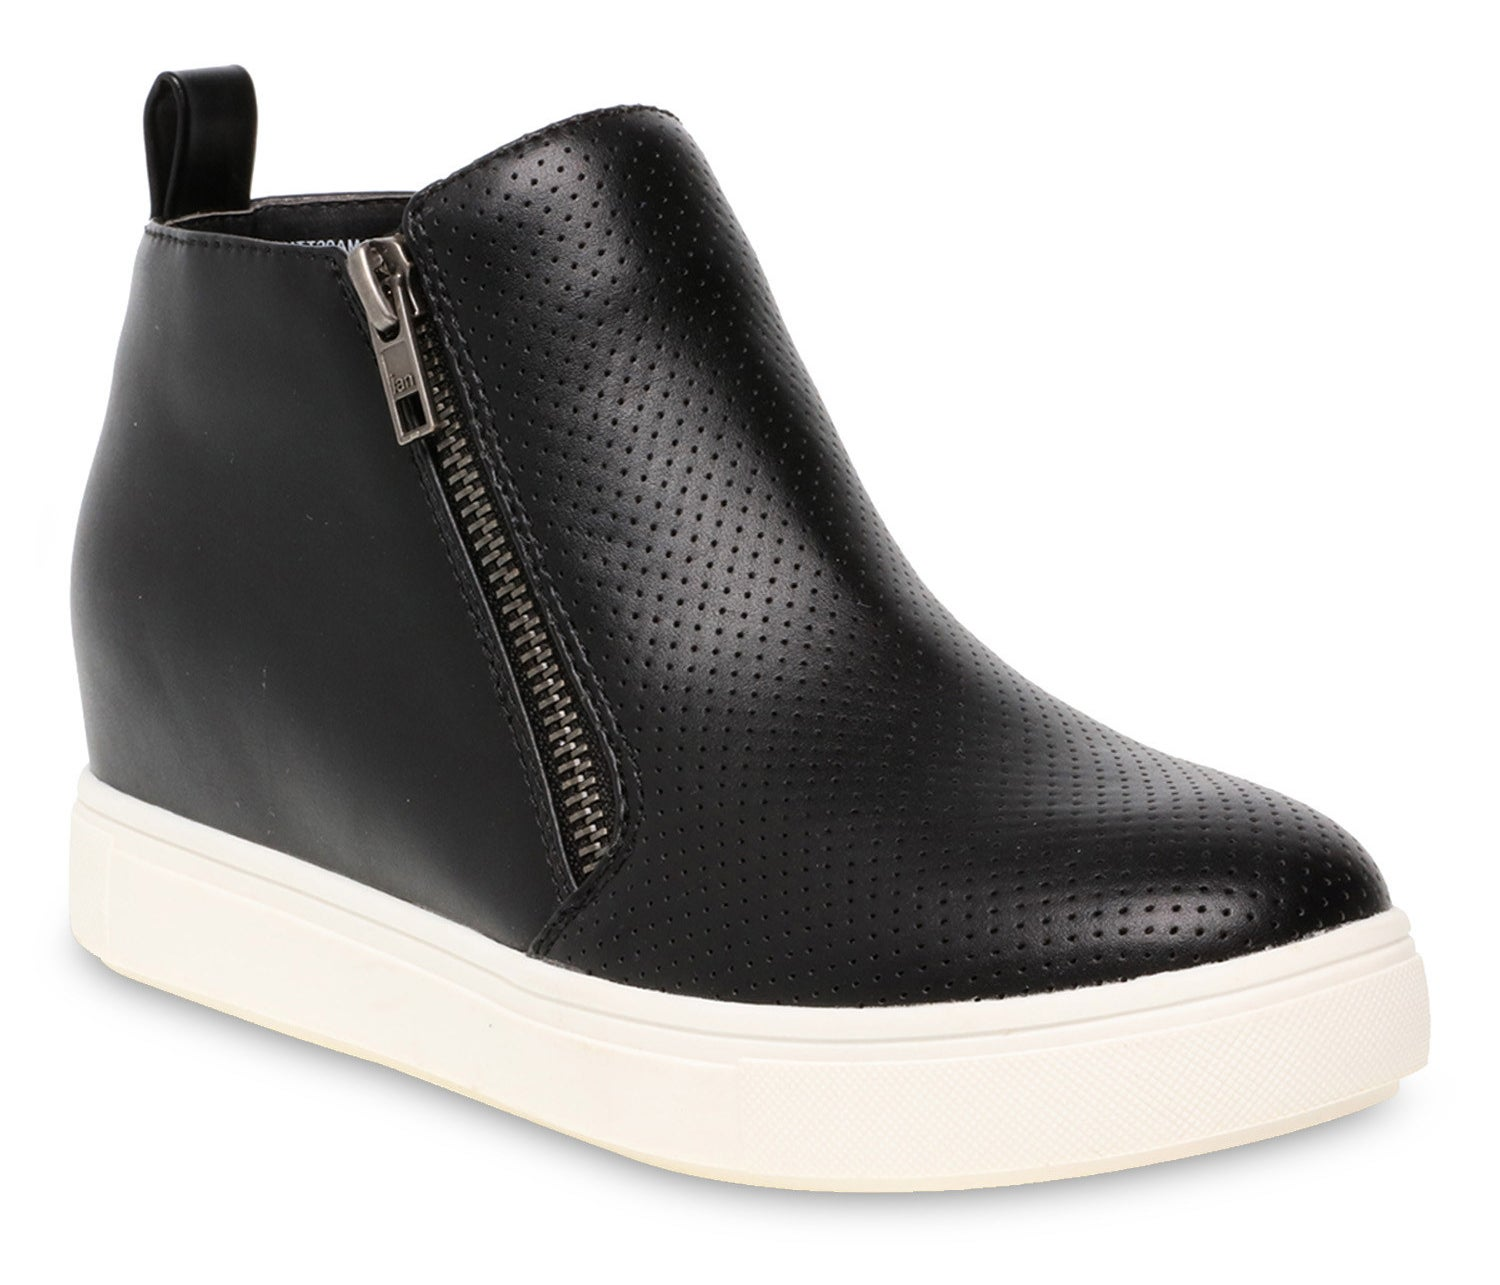 black sneaker wedges with white bottoms and a side zipper